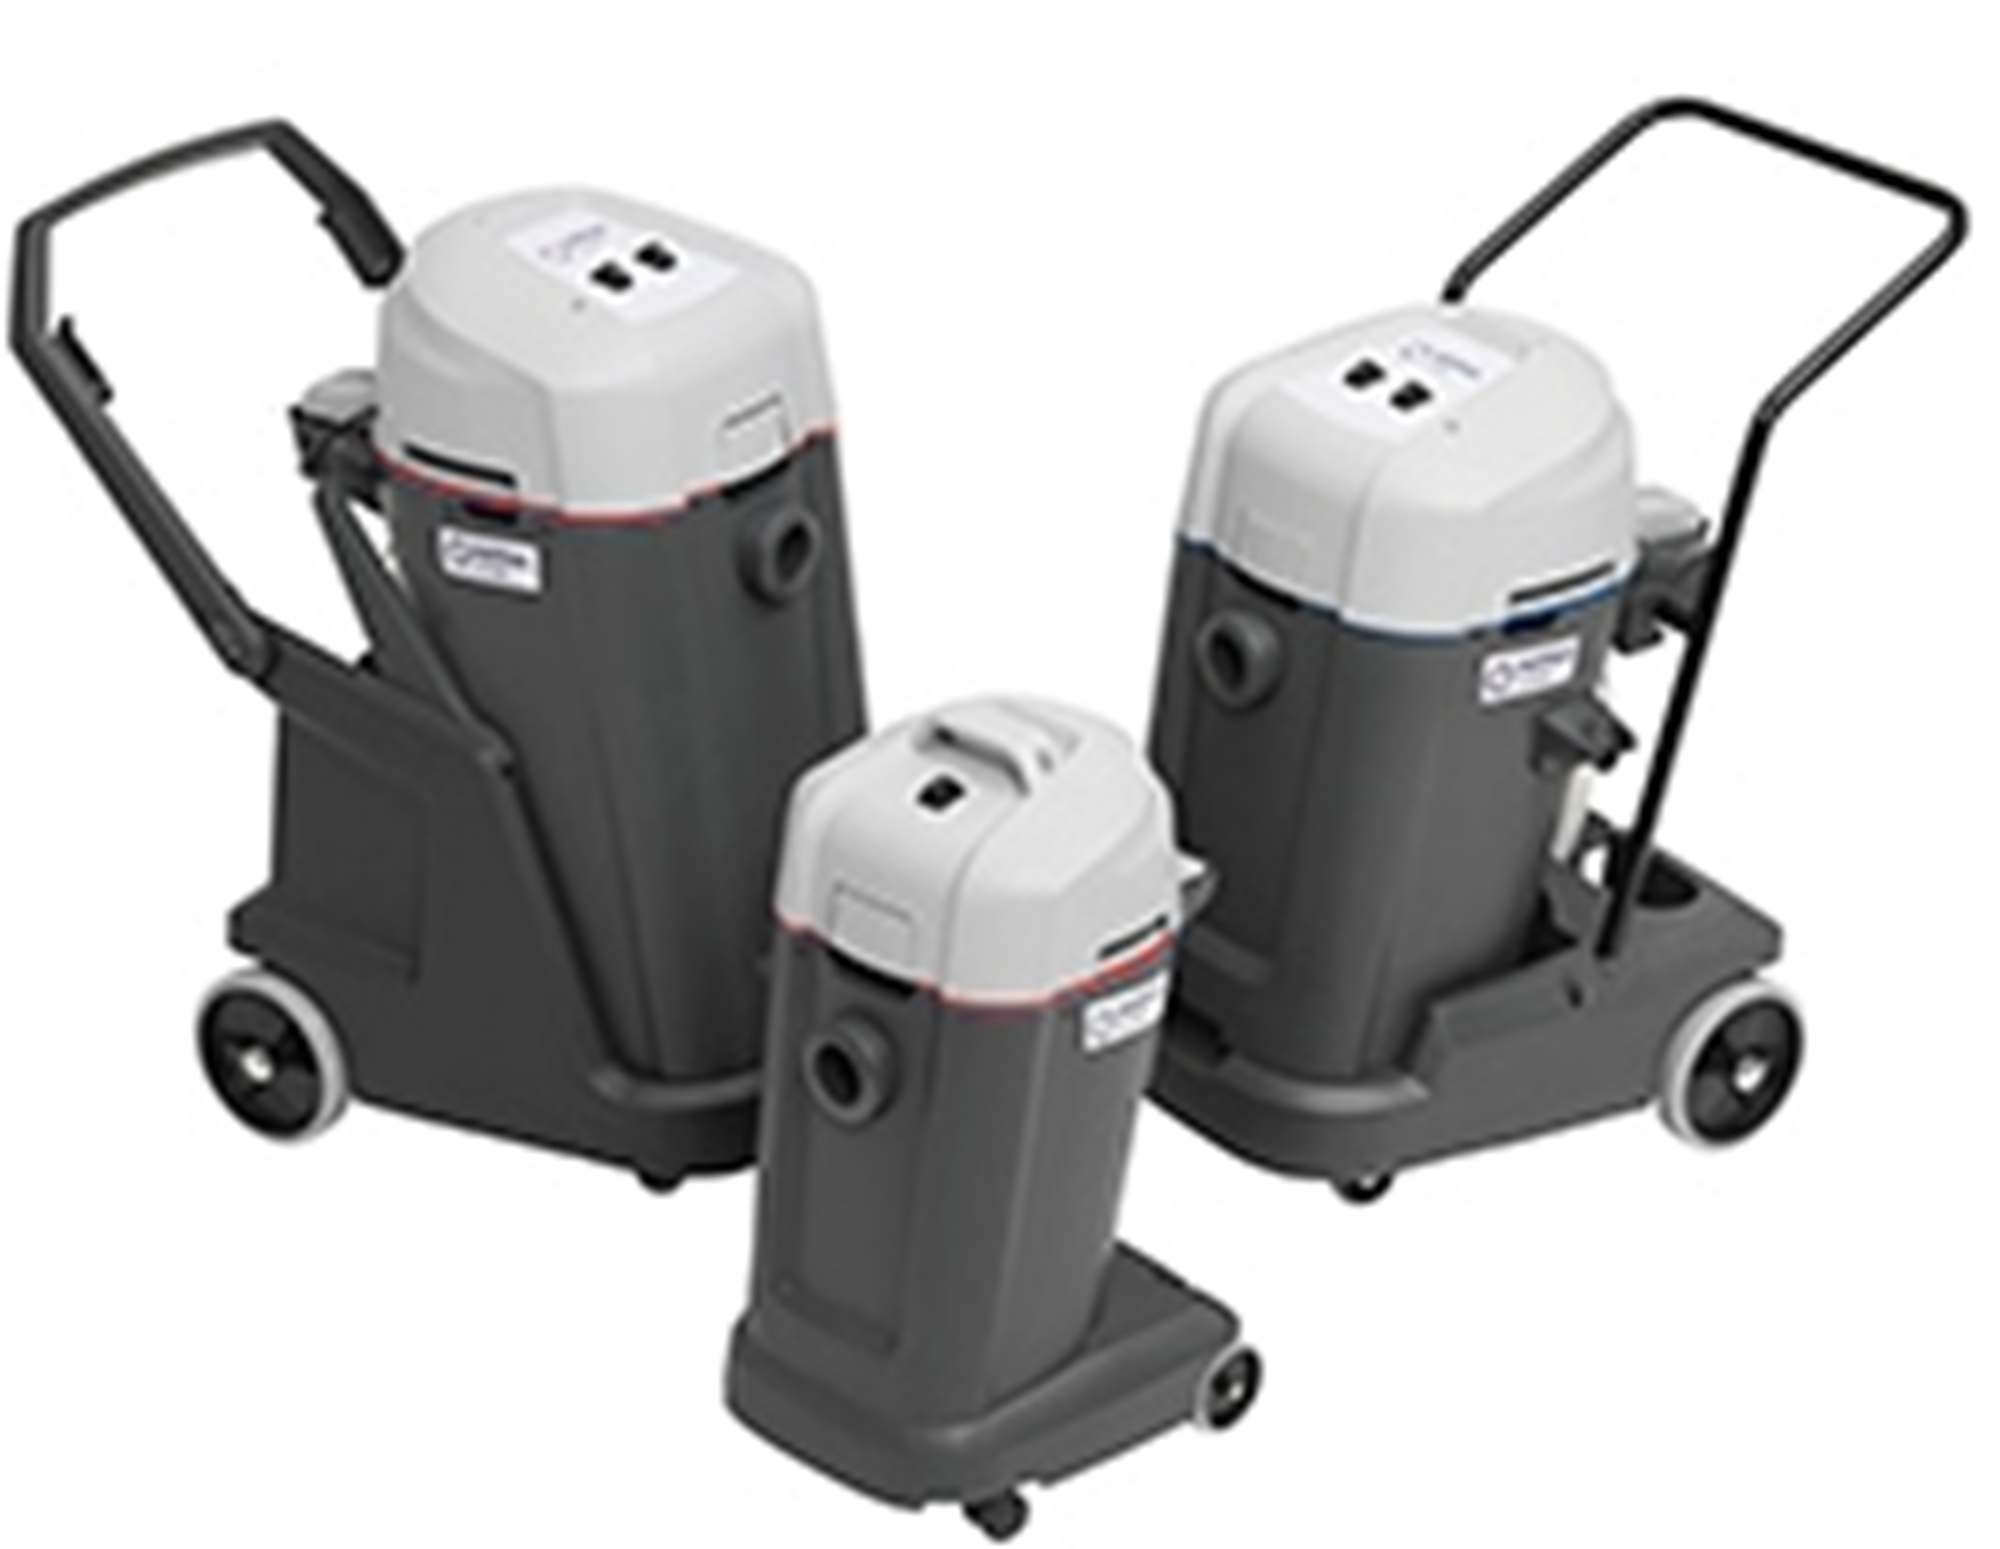 Product, Vacuum cleaners, Commercial vacuum cleaners, Wet and dry vacuum cleaners, Nilfisk, VL500 75-1 EDF 220-240V/50-60 EU